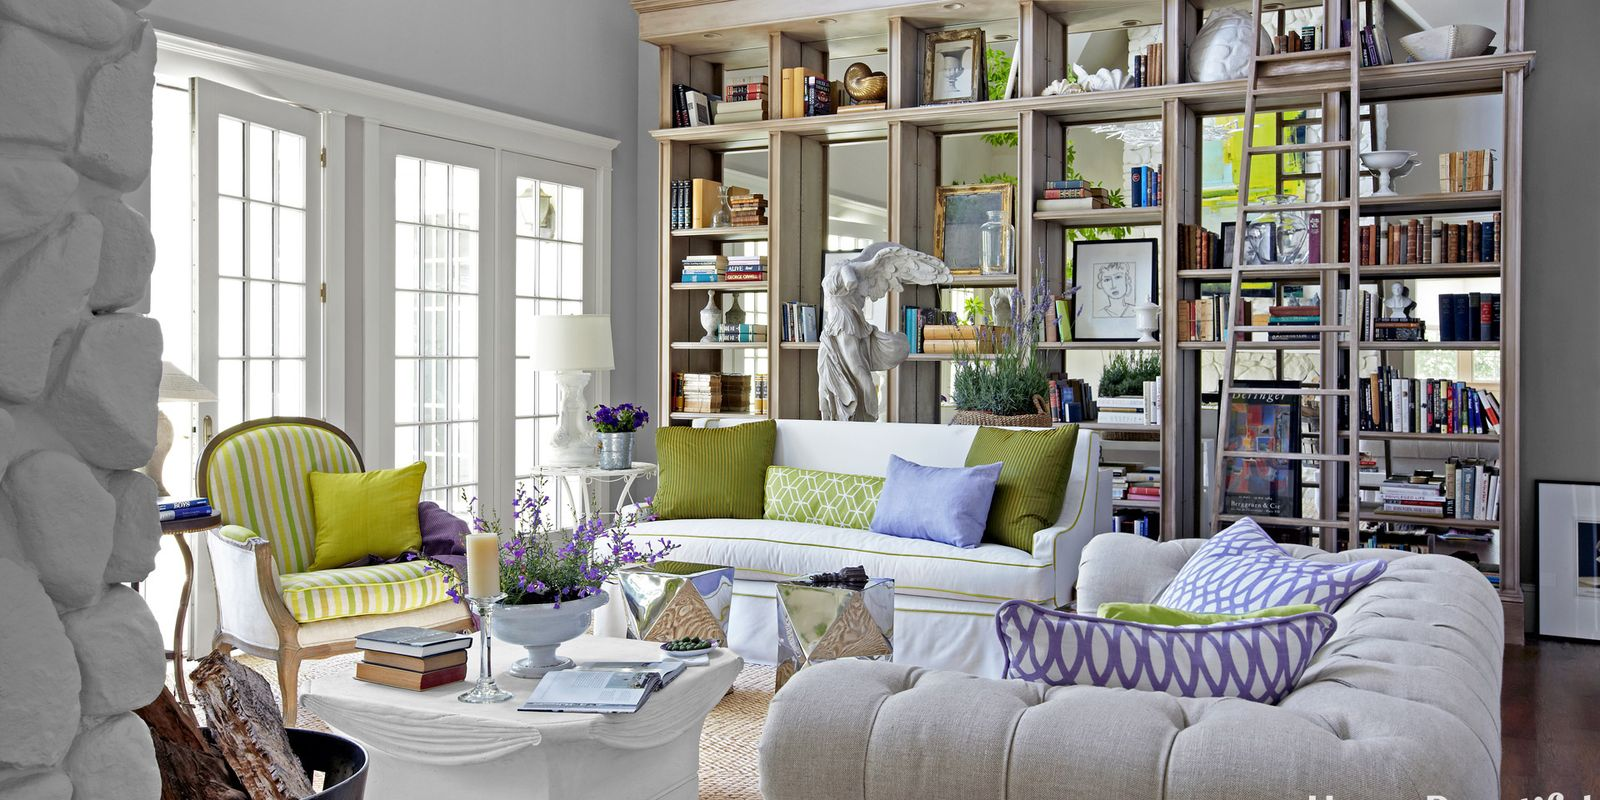 Bookshelf decorating ideas unique bookshelf decor ideas for Bookshelves ideas living rooms